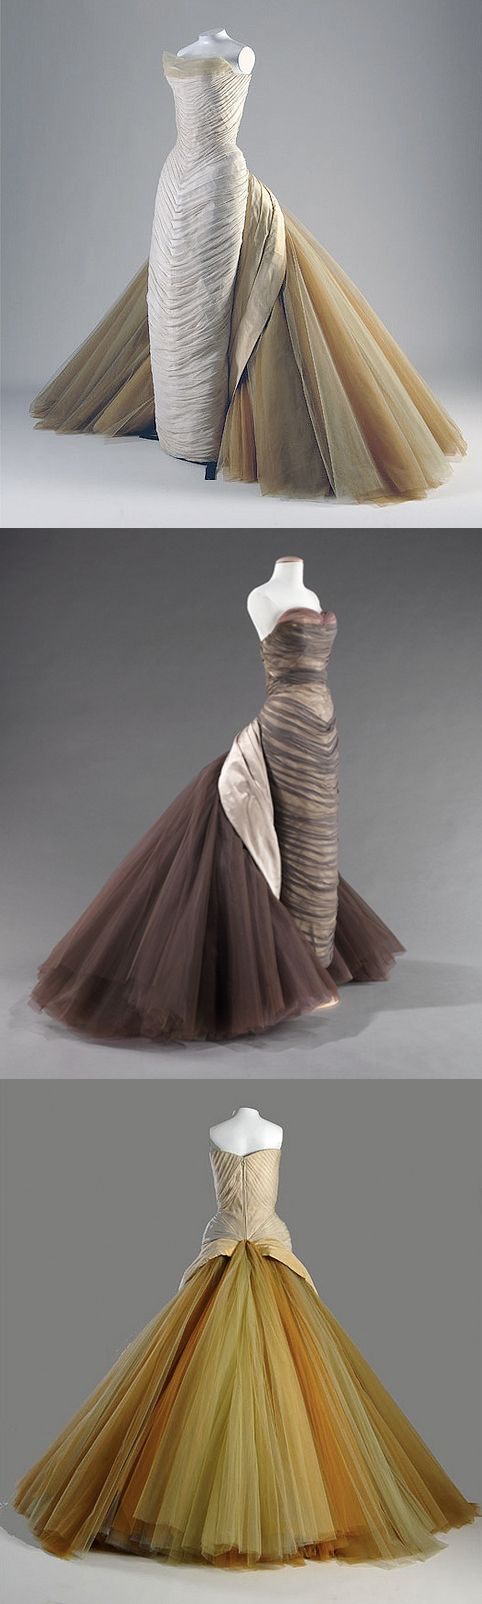 Charles James Butterfly Gowns, 1950s